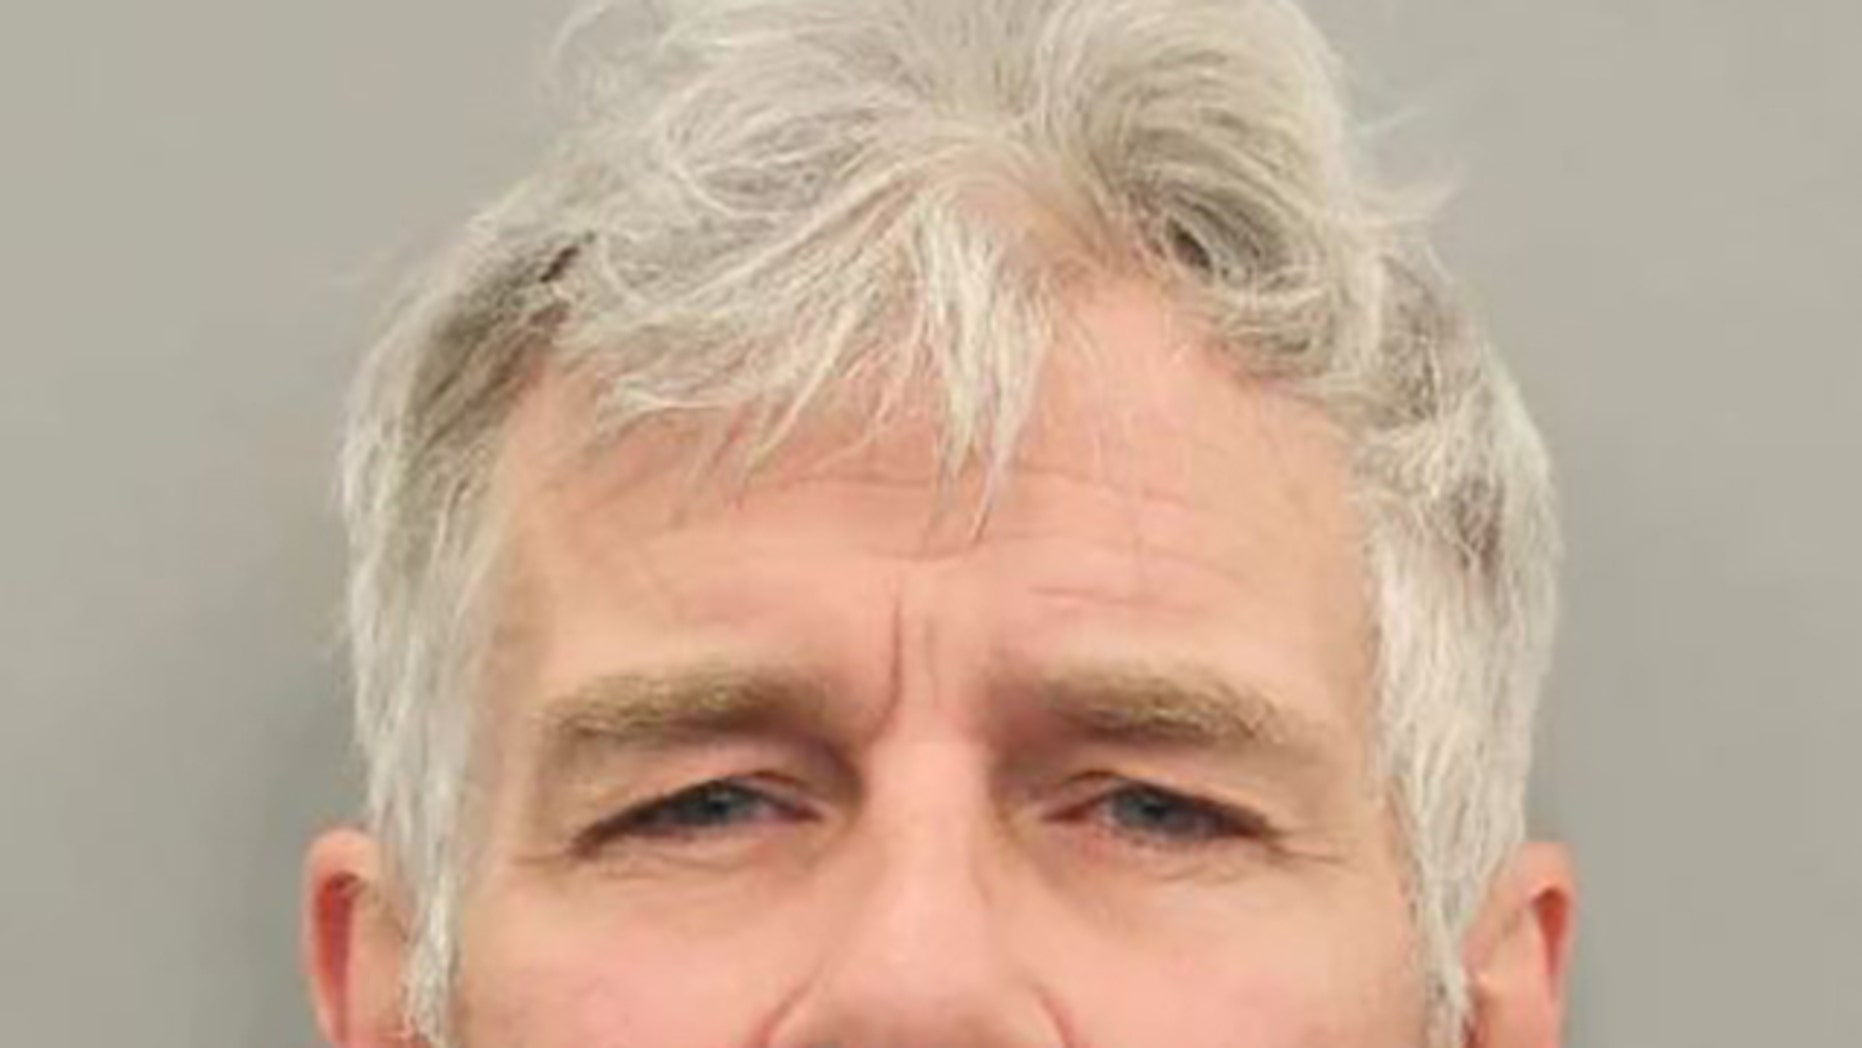 Actor Timothy Williams, most recognized as the pitchman for the discount travel website Trivago.com, was arrested Wednesday in Houston for allegedly driving while intoxicated, police said.